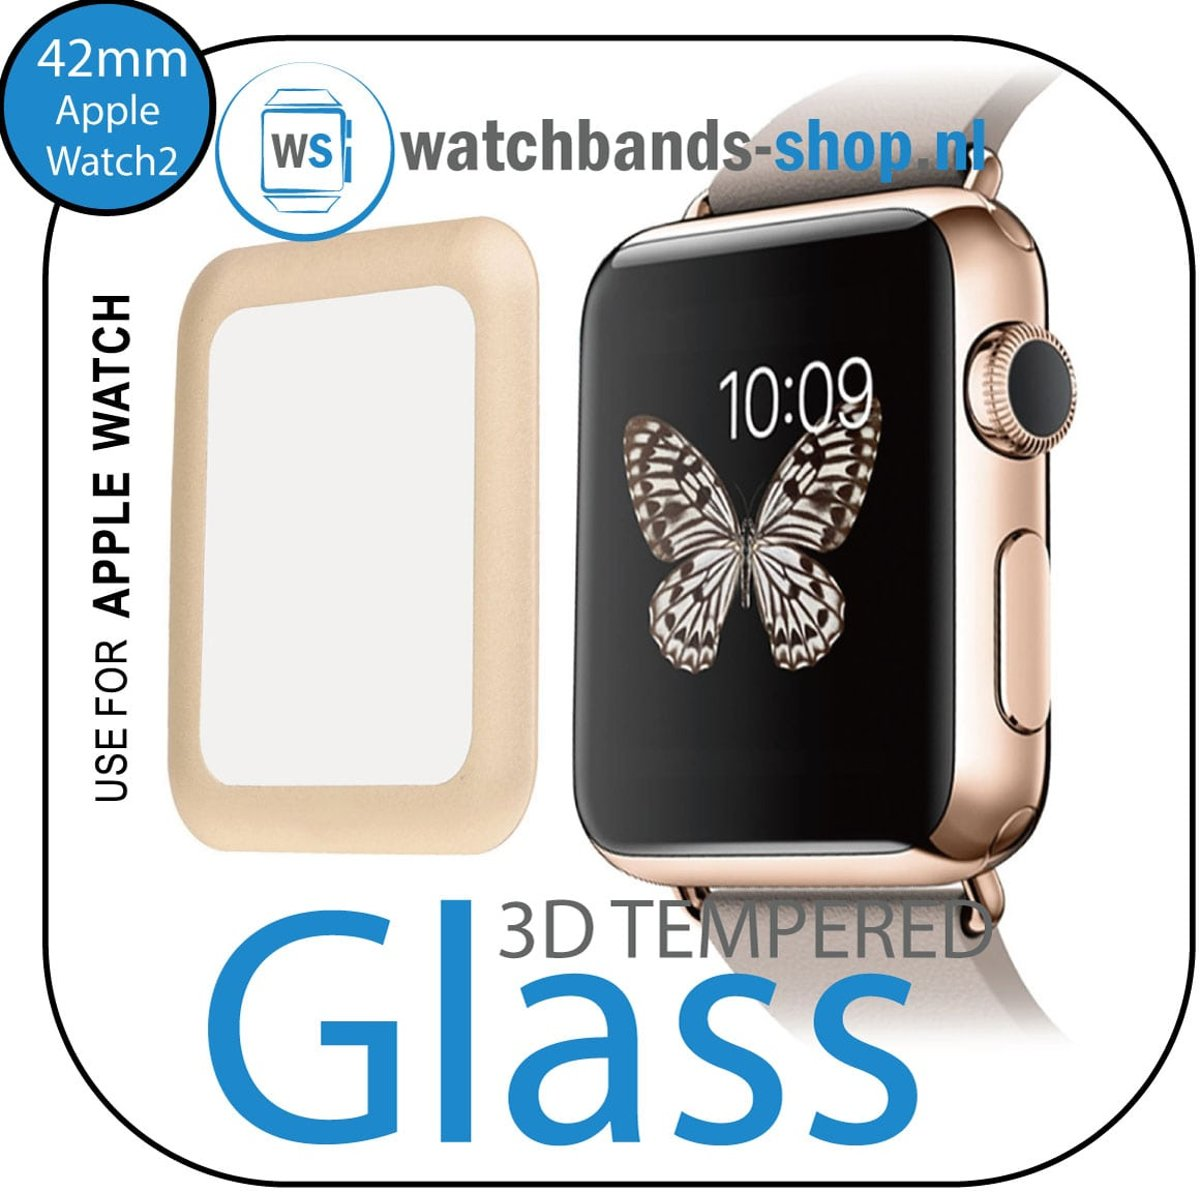 42mm full Cover 3D Tempered Glass Screen Protector For Apple watch / iWatch 2 gold edge | Watchbands-shop.nl kopen